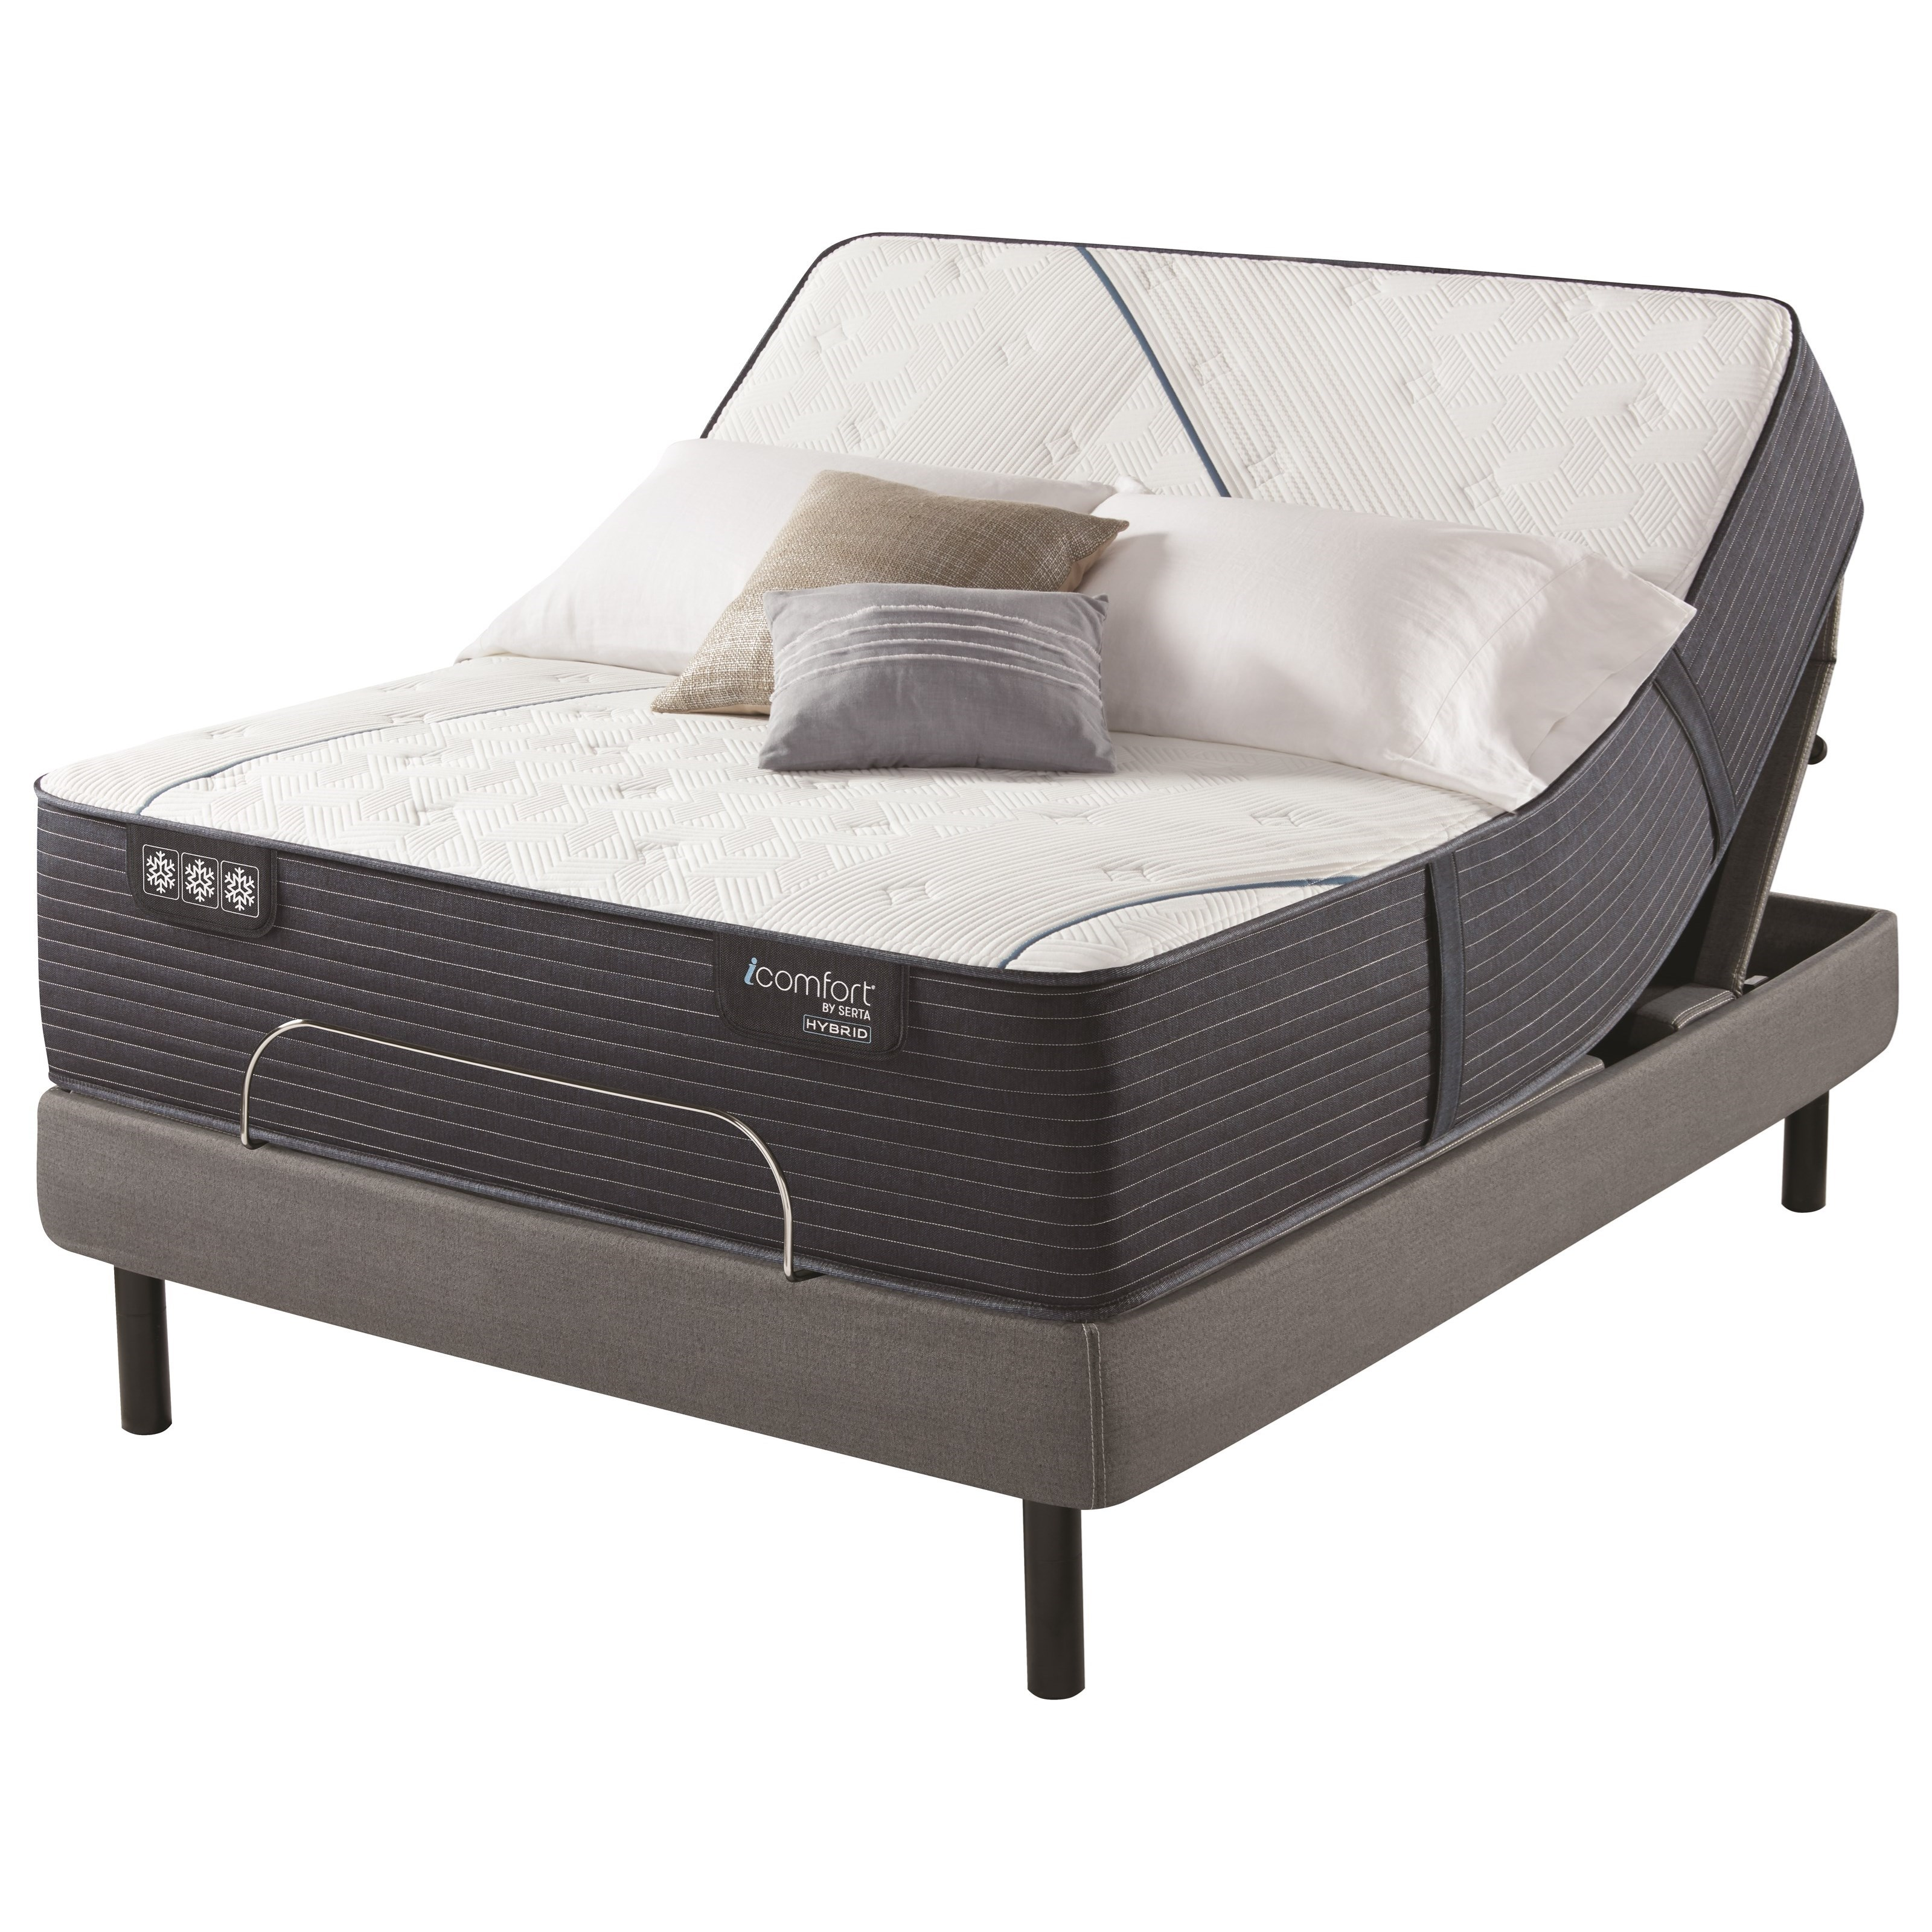 """CF3000 Quilted Hybrid II Plush Twin XL 14 1/4"""" Plush Hybrid Adj Set by Serta at Furniture Superstore - Rochester, MN"""